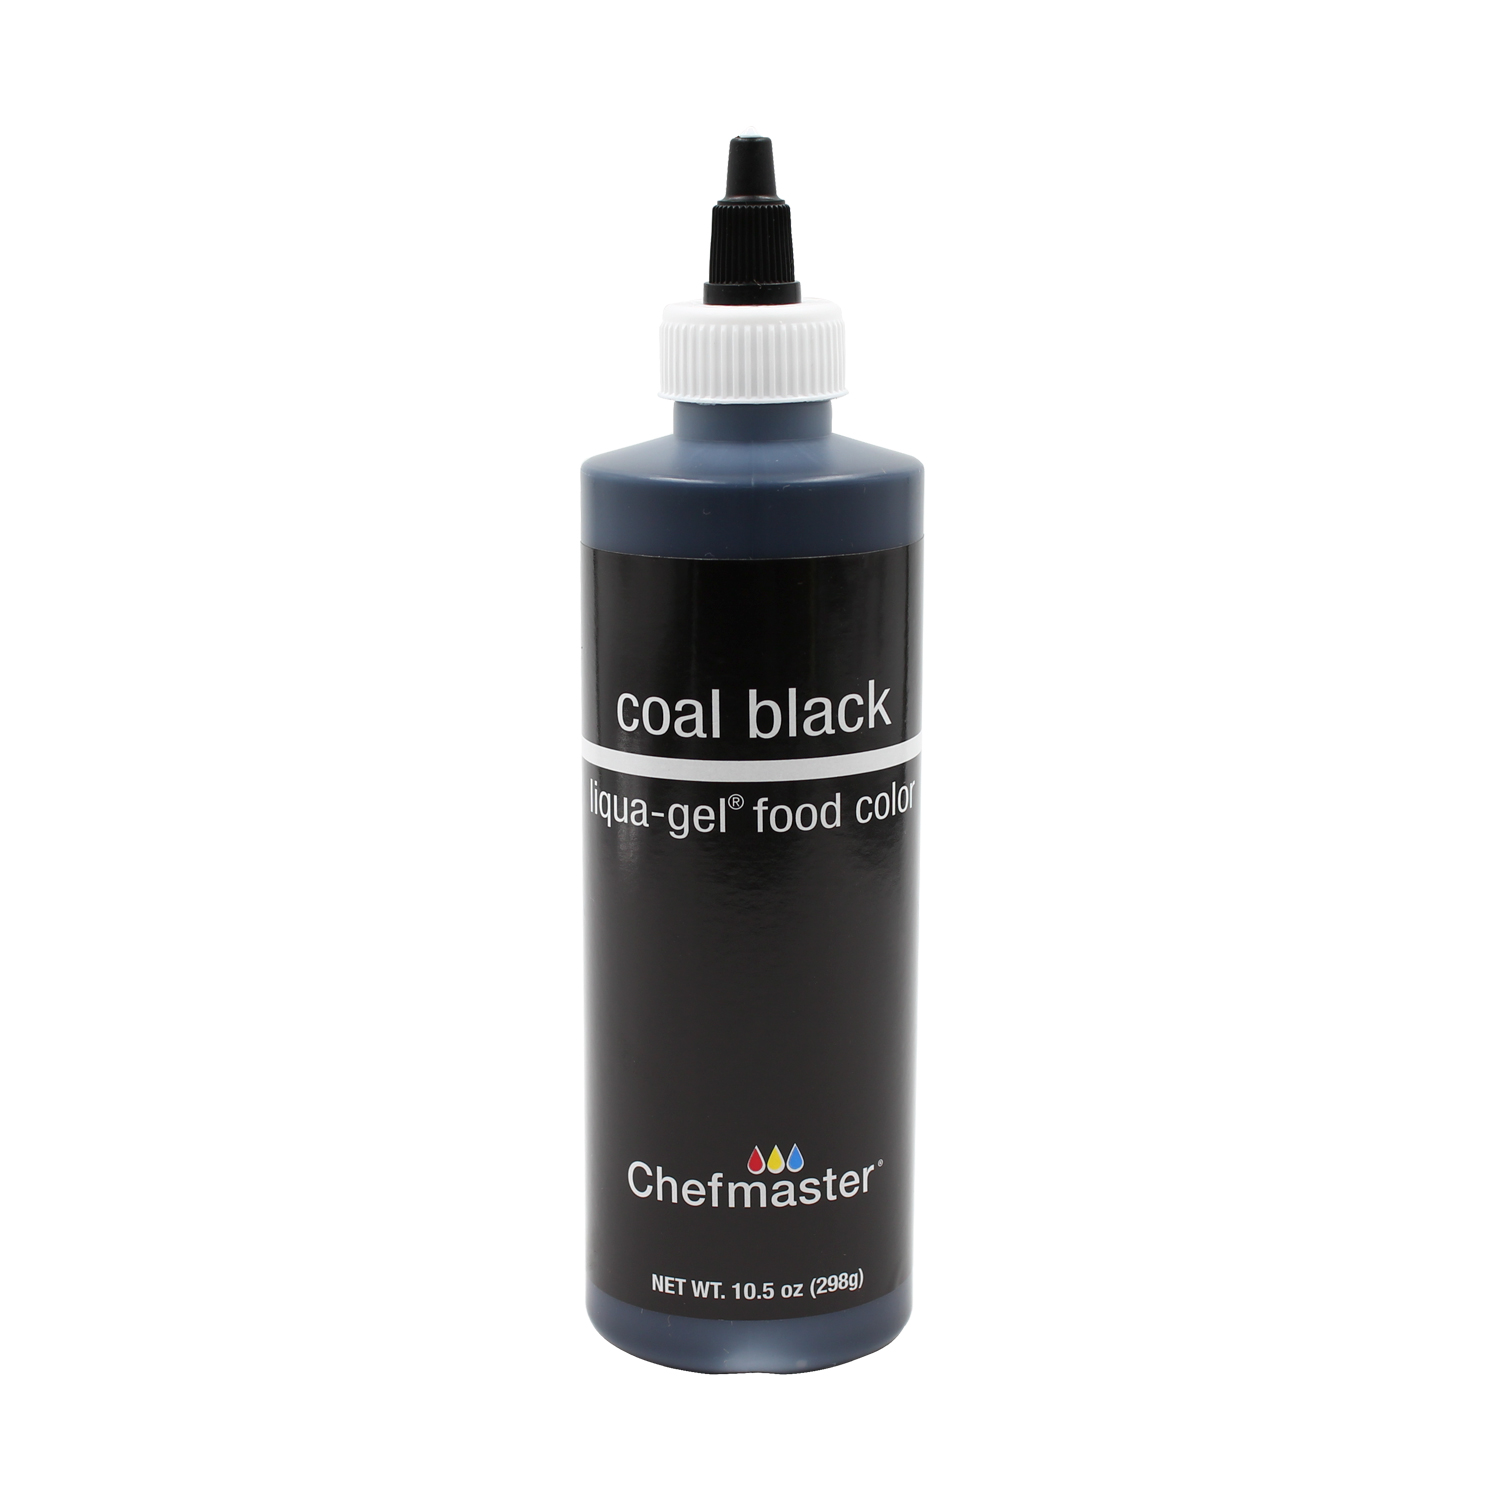 Details about Chefmaster by US Cake Supply 10.5-Ounce Coal Black Liqua-Gel  Cake Food Coloring